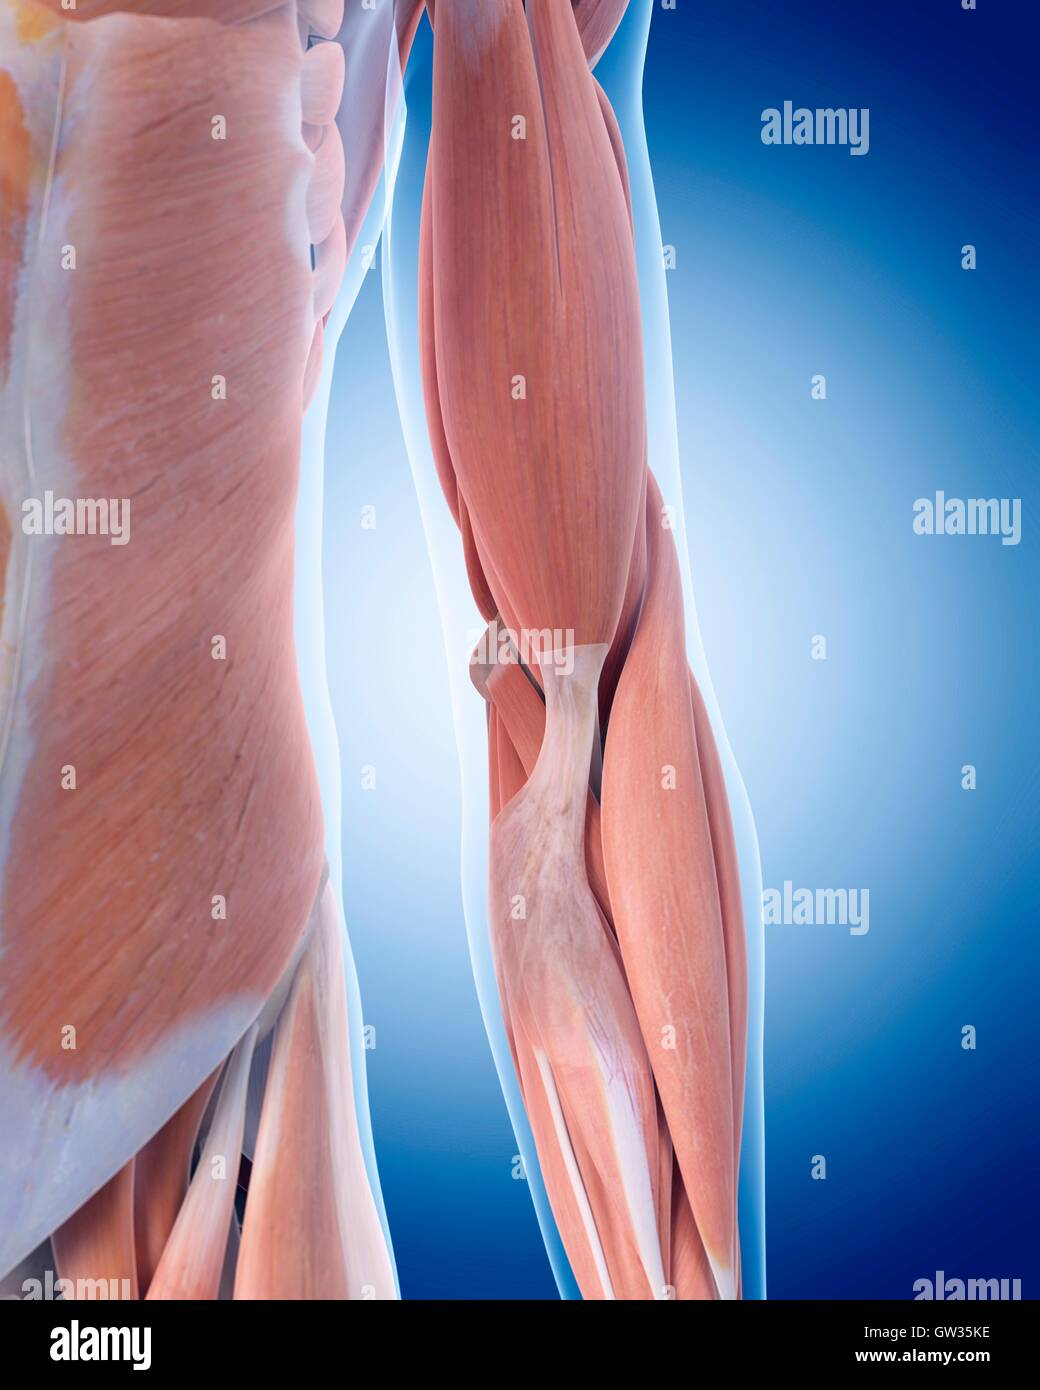 Arm Muscle Artwork Stockfotos & Arm Muscle Artwork Bilder - Seite 3 ...